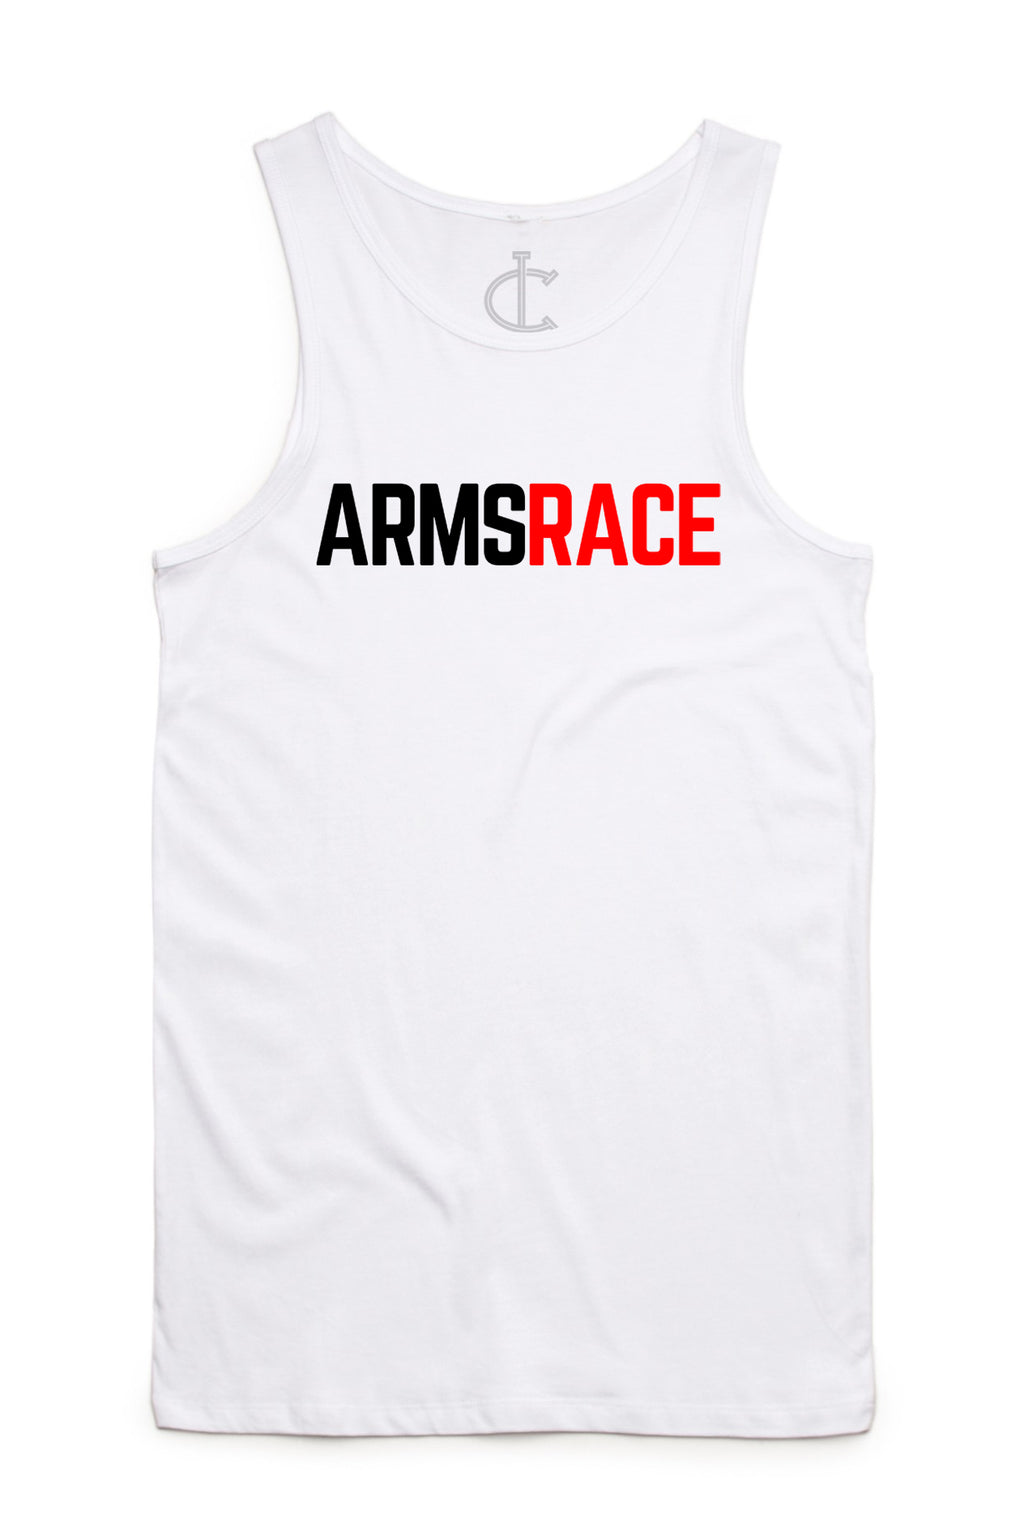 ArmsRace Tank Top - White